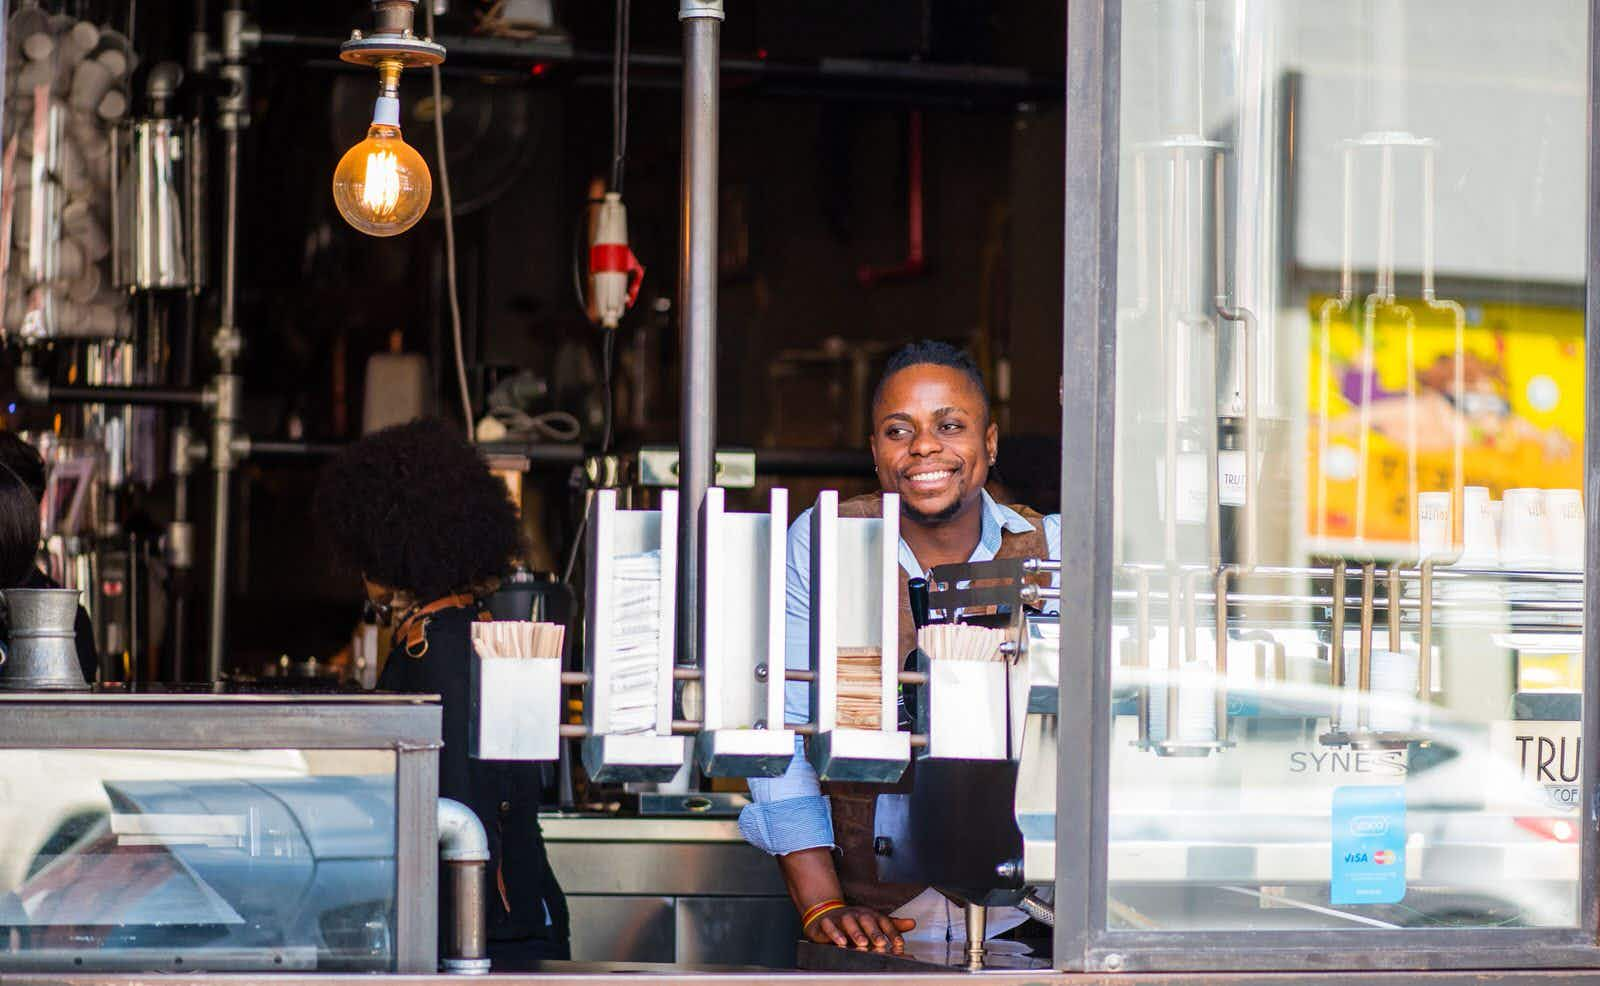 Style meets substance at Coco Safar, with unique coffees, fabulous patisseries and African tastes @ Coco Safar